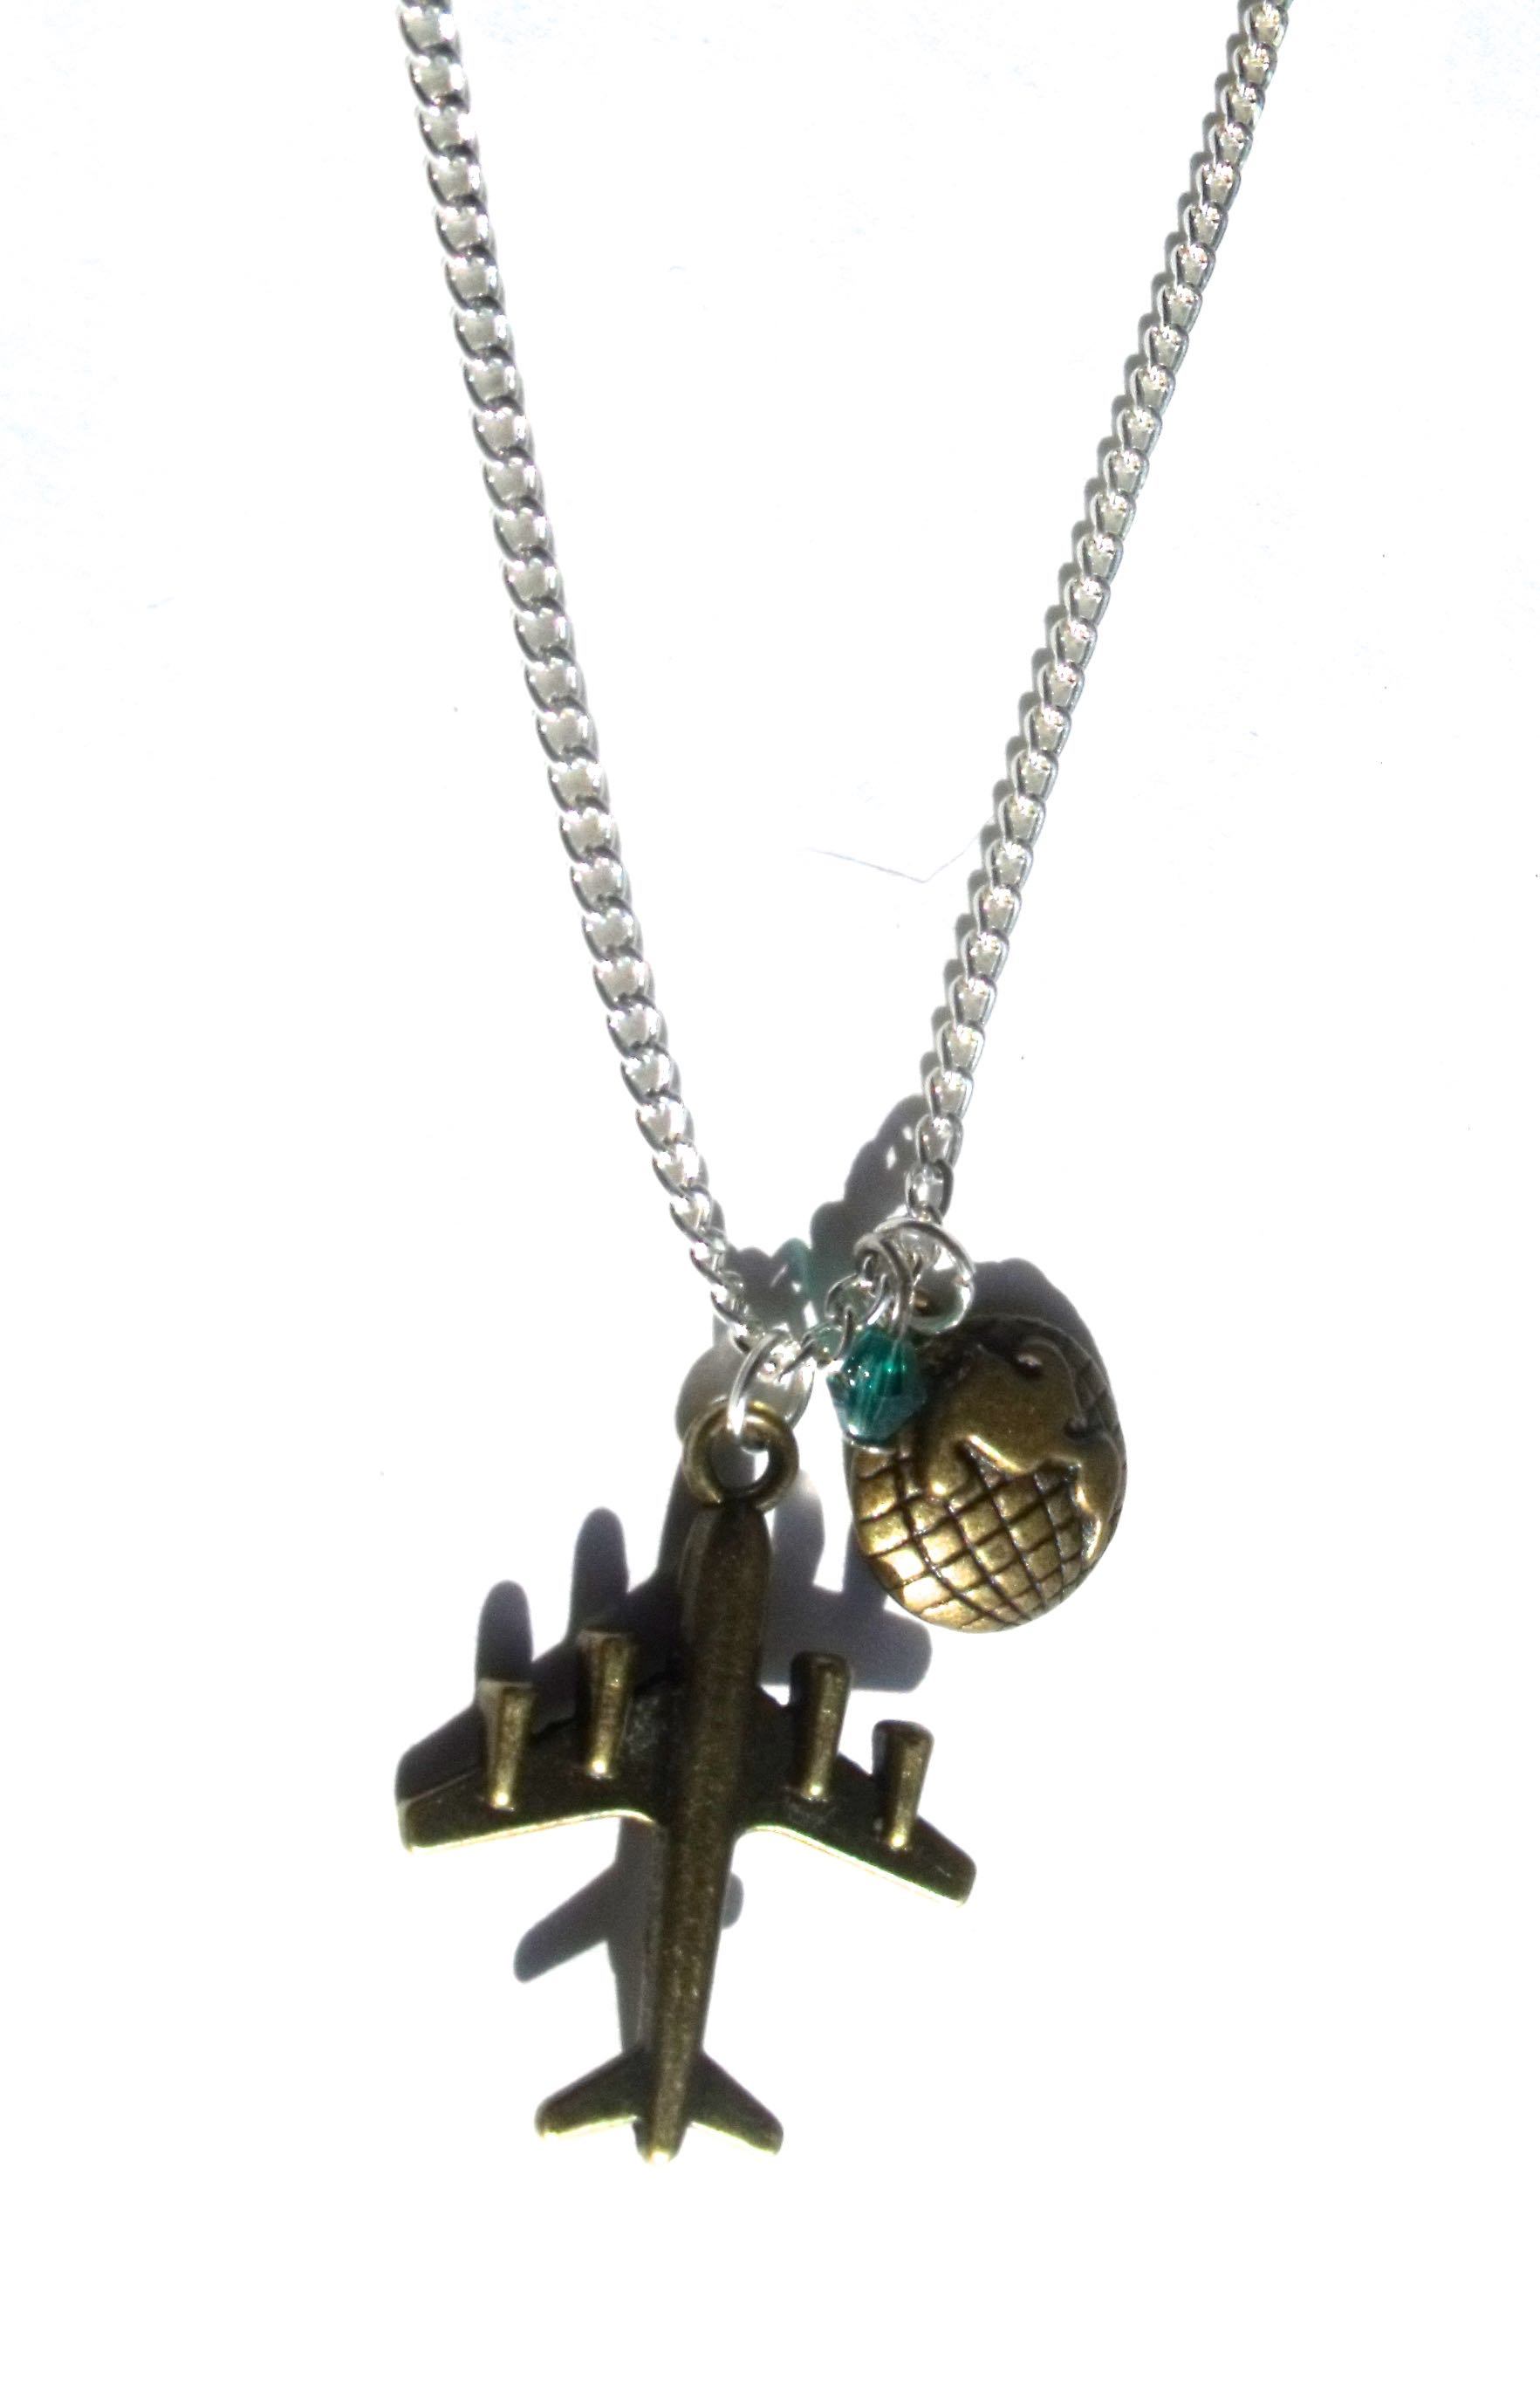 traveller necklace